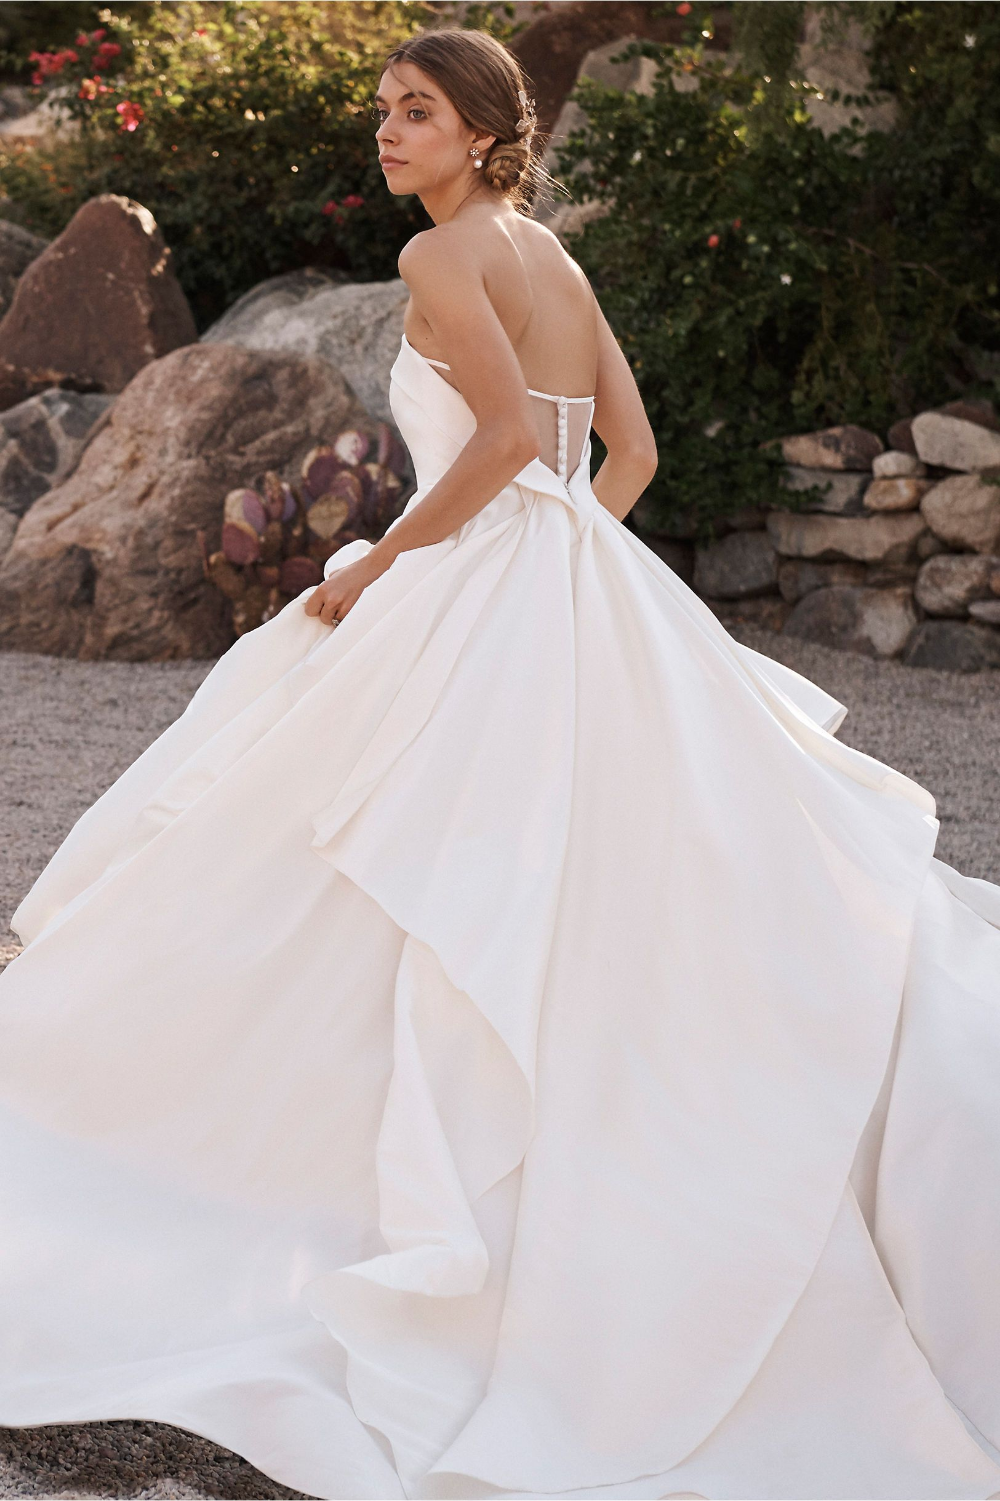 New Wedding Dresses Bridal Resale Shops Near Me Stores